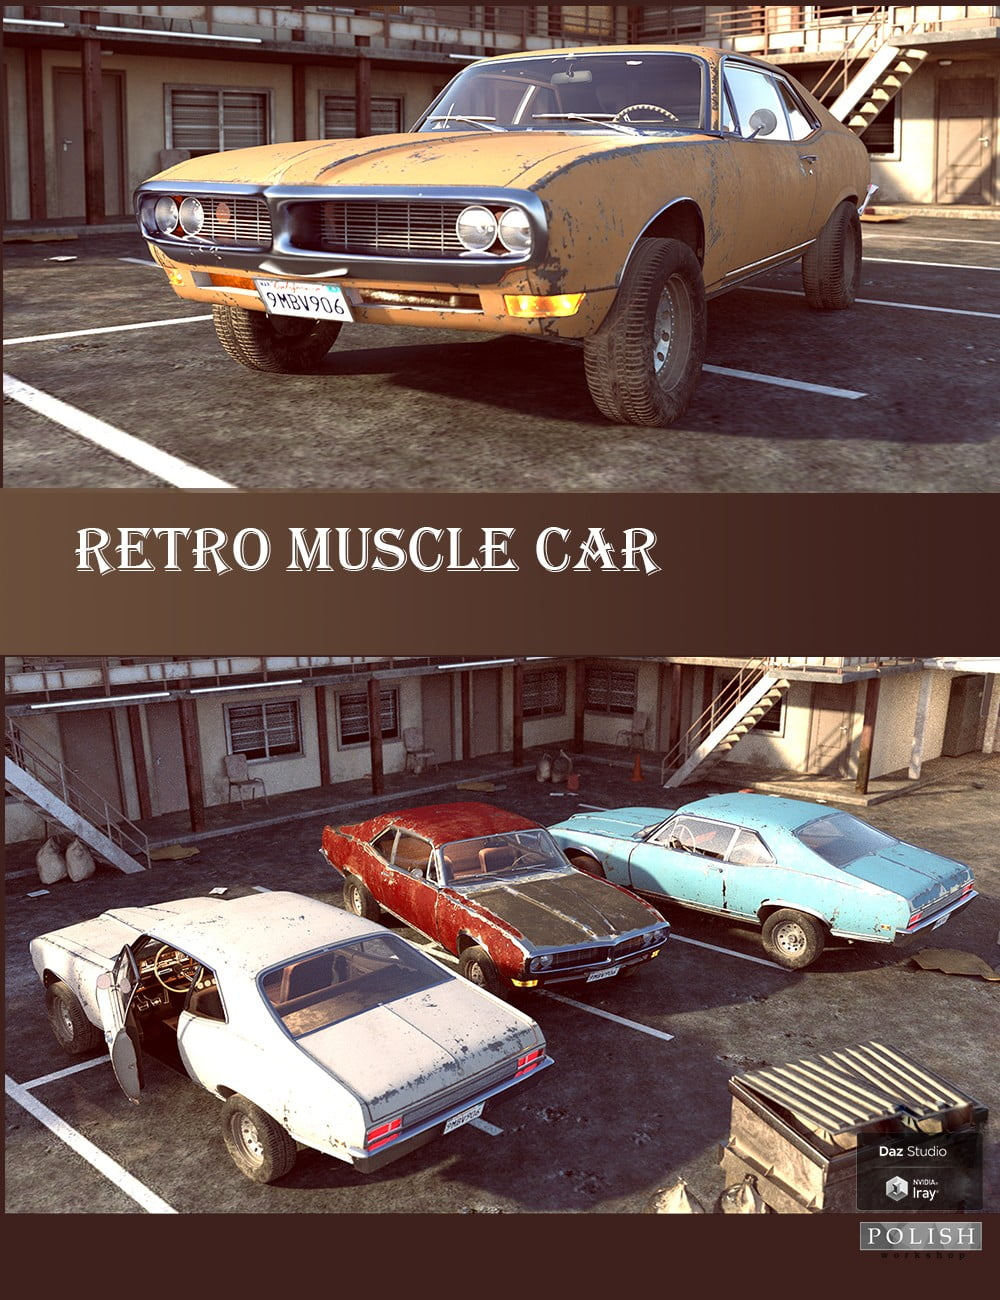 Retro Muscle Car